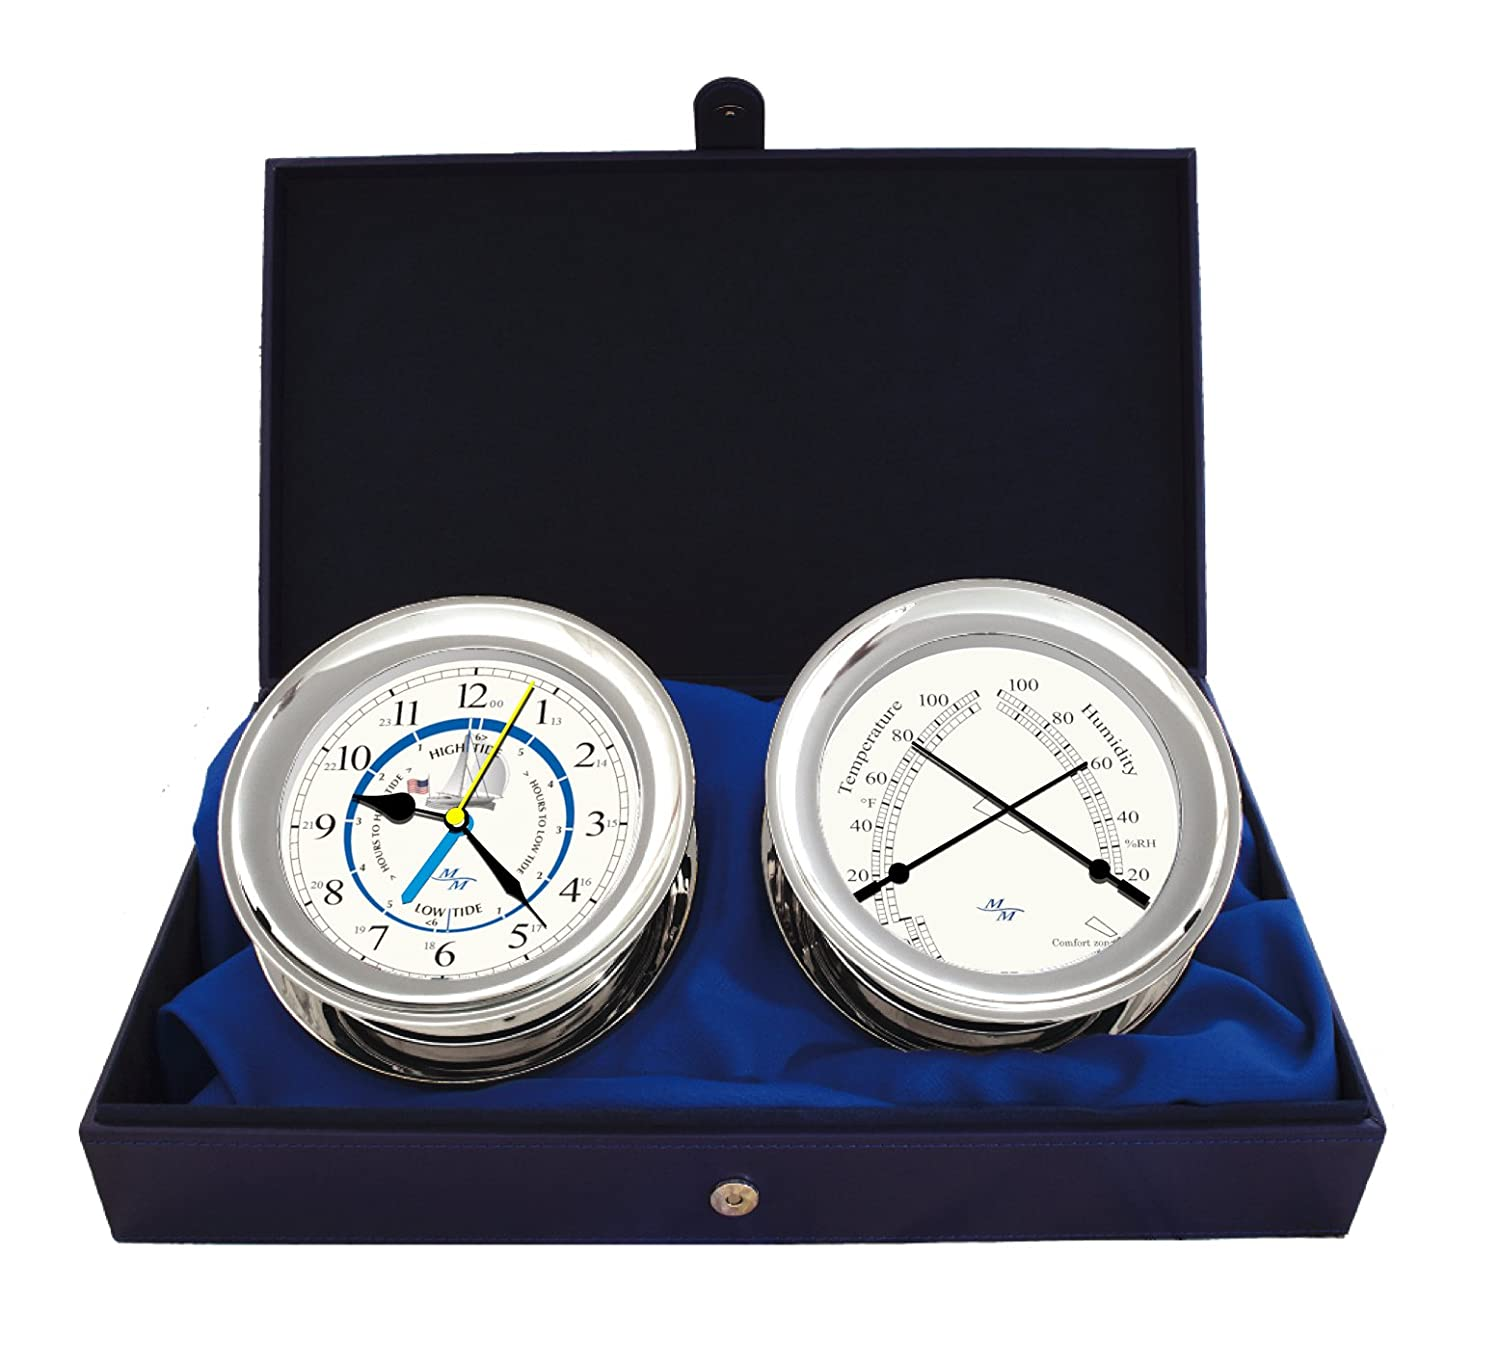 Chrome Time and Tide Clock and Comfort Meter Instruments